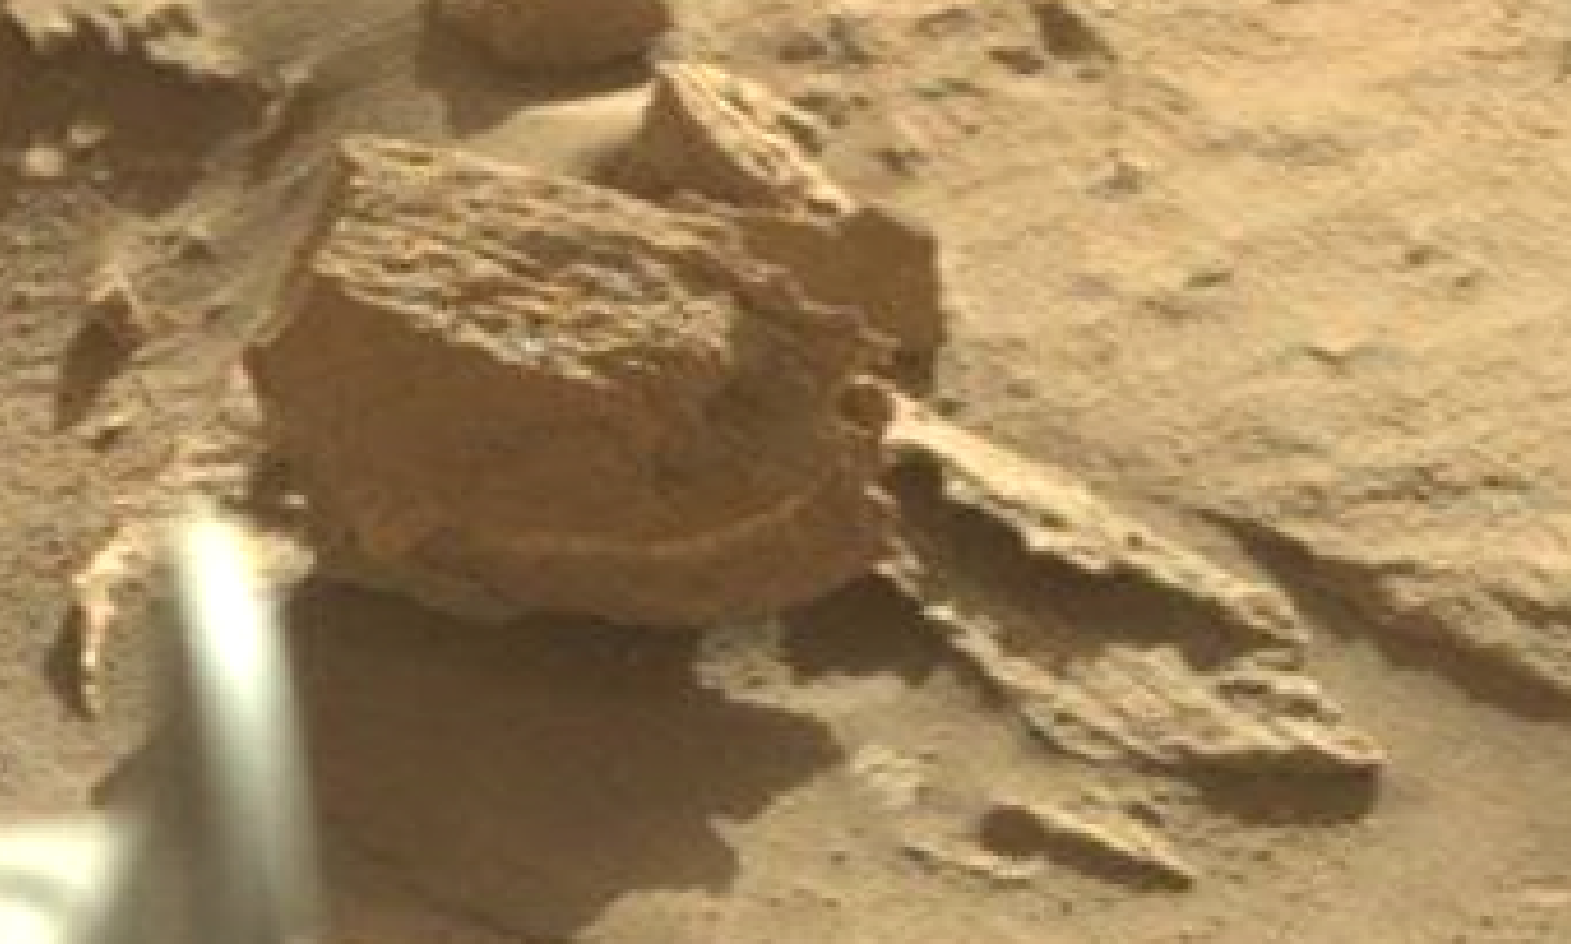 mars sol 1302 anomaly-artifacts 2 was life on mars